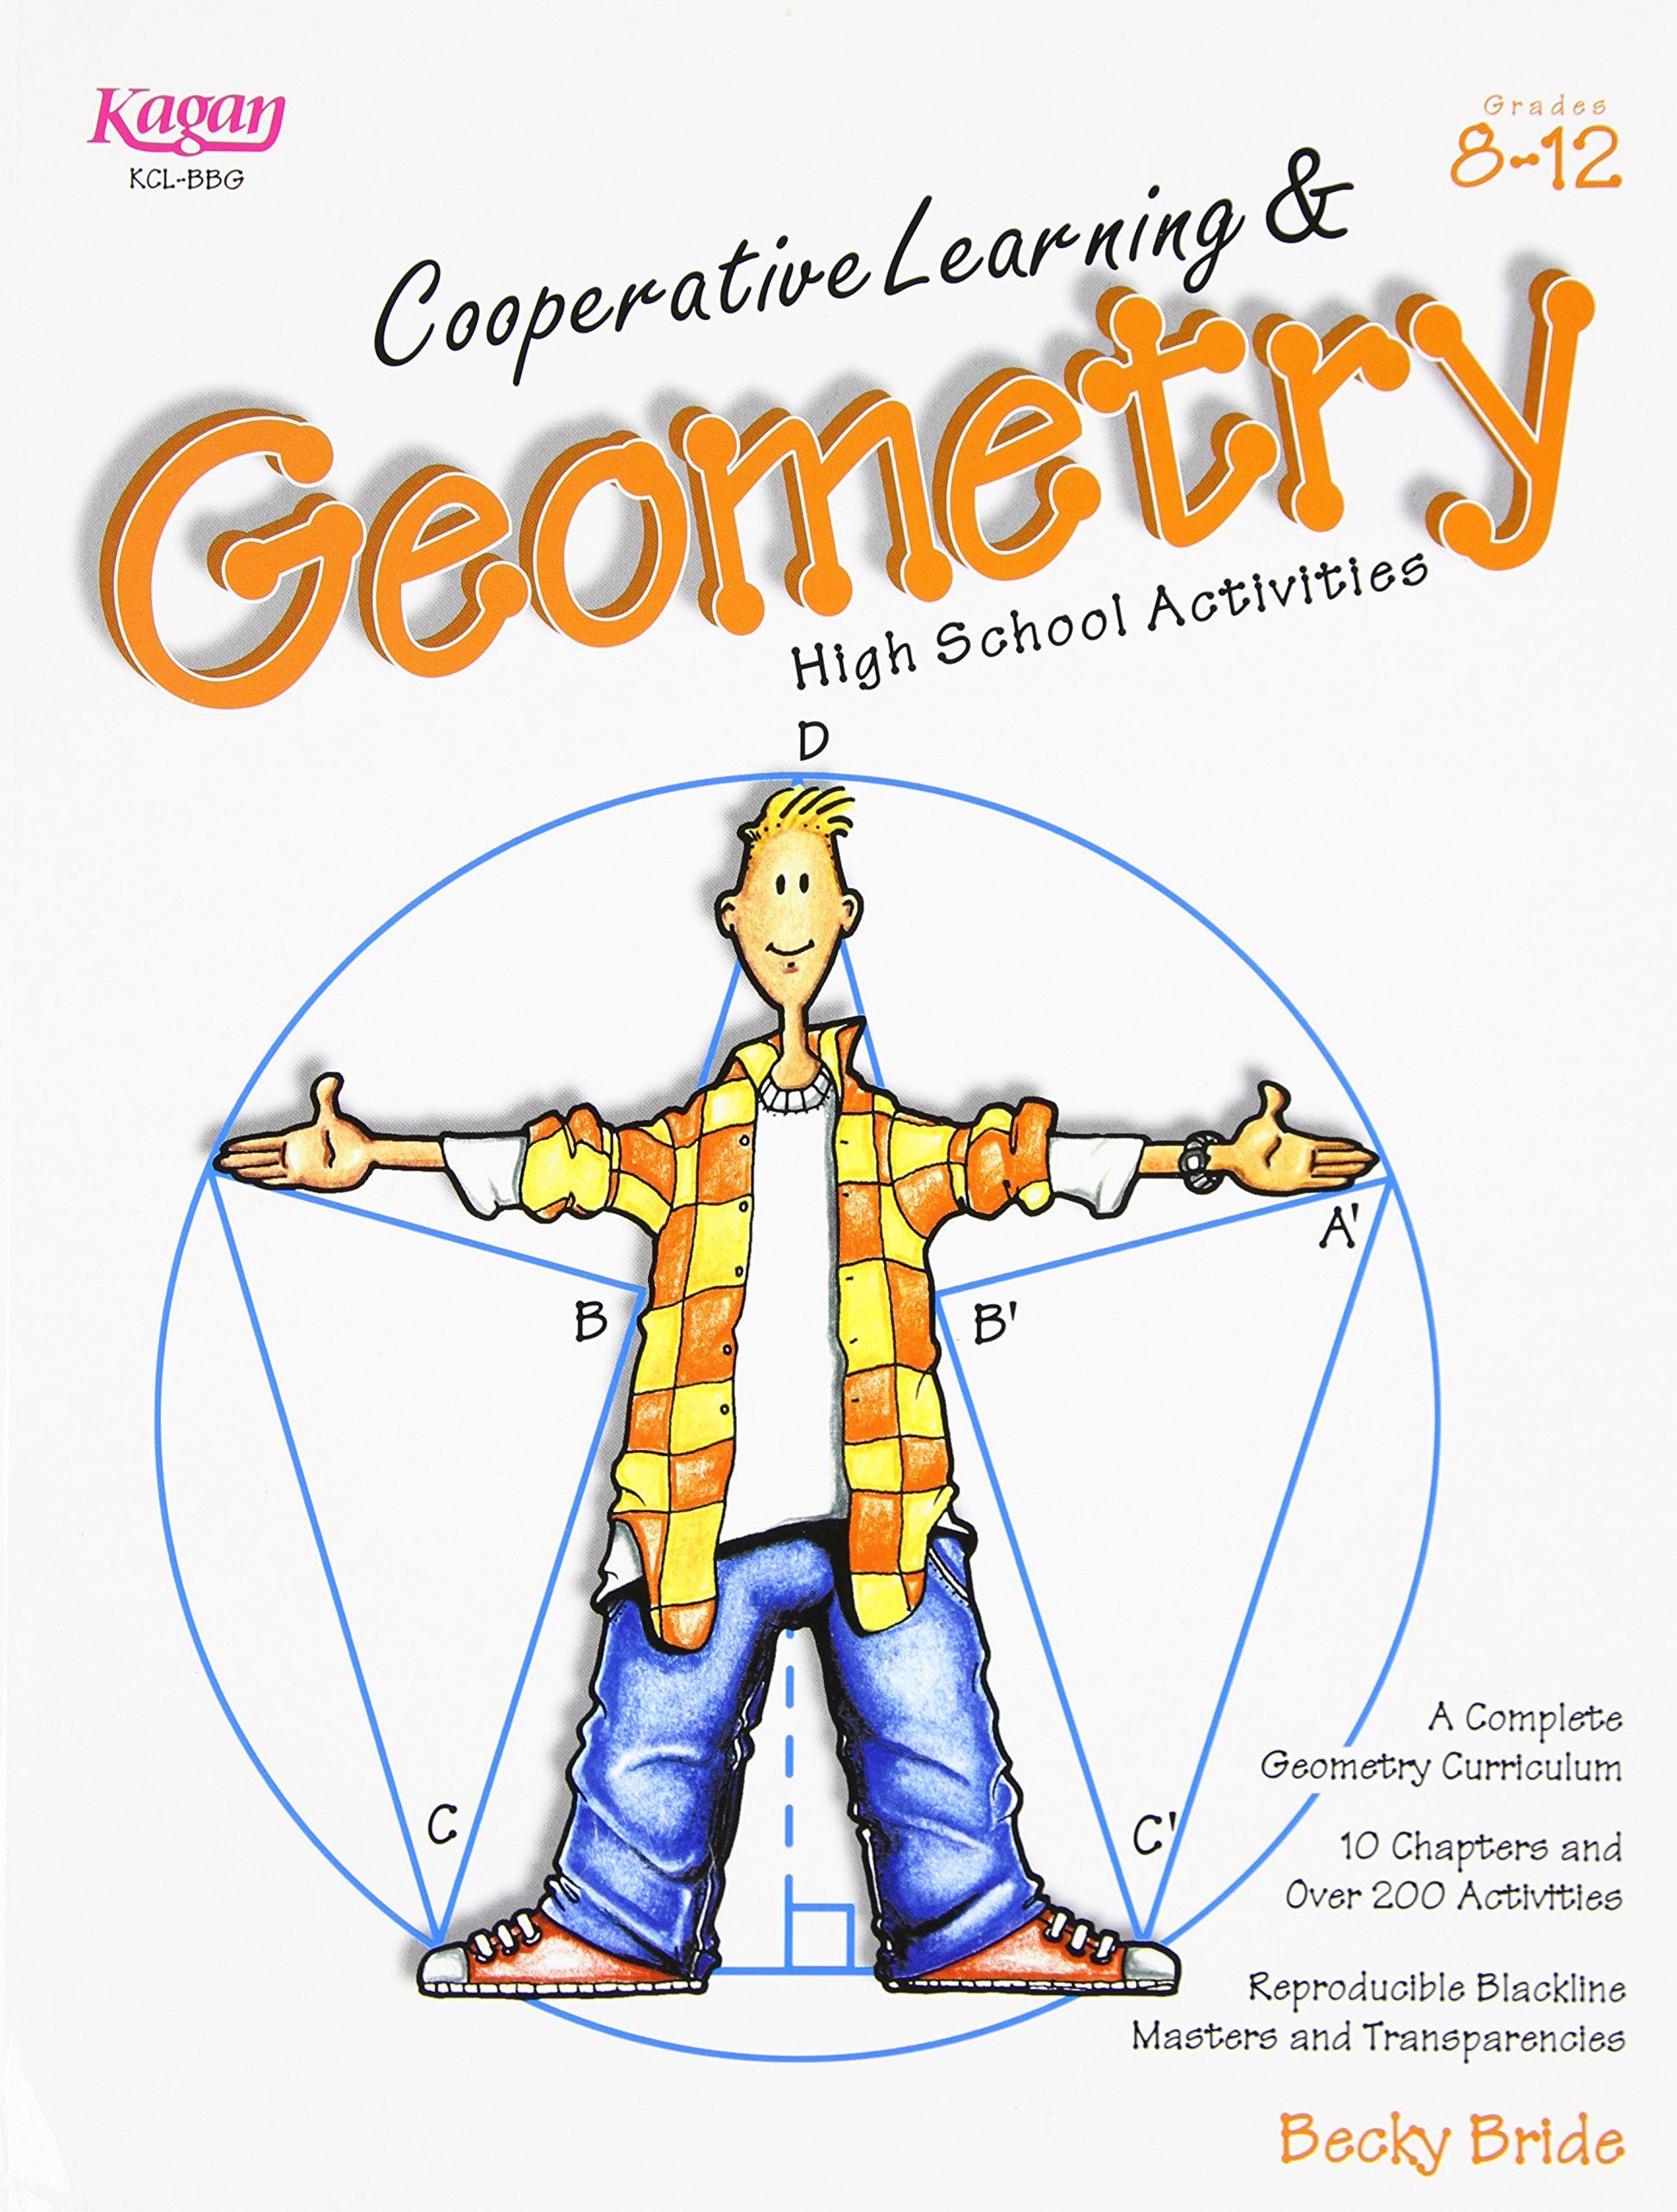 Cooperative Learning And Geometry High School Activities